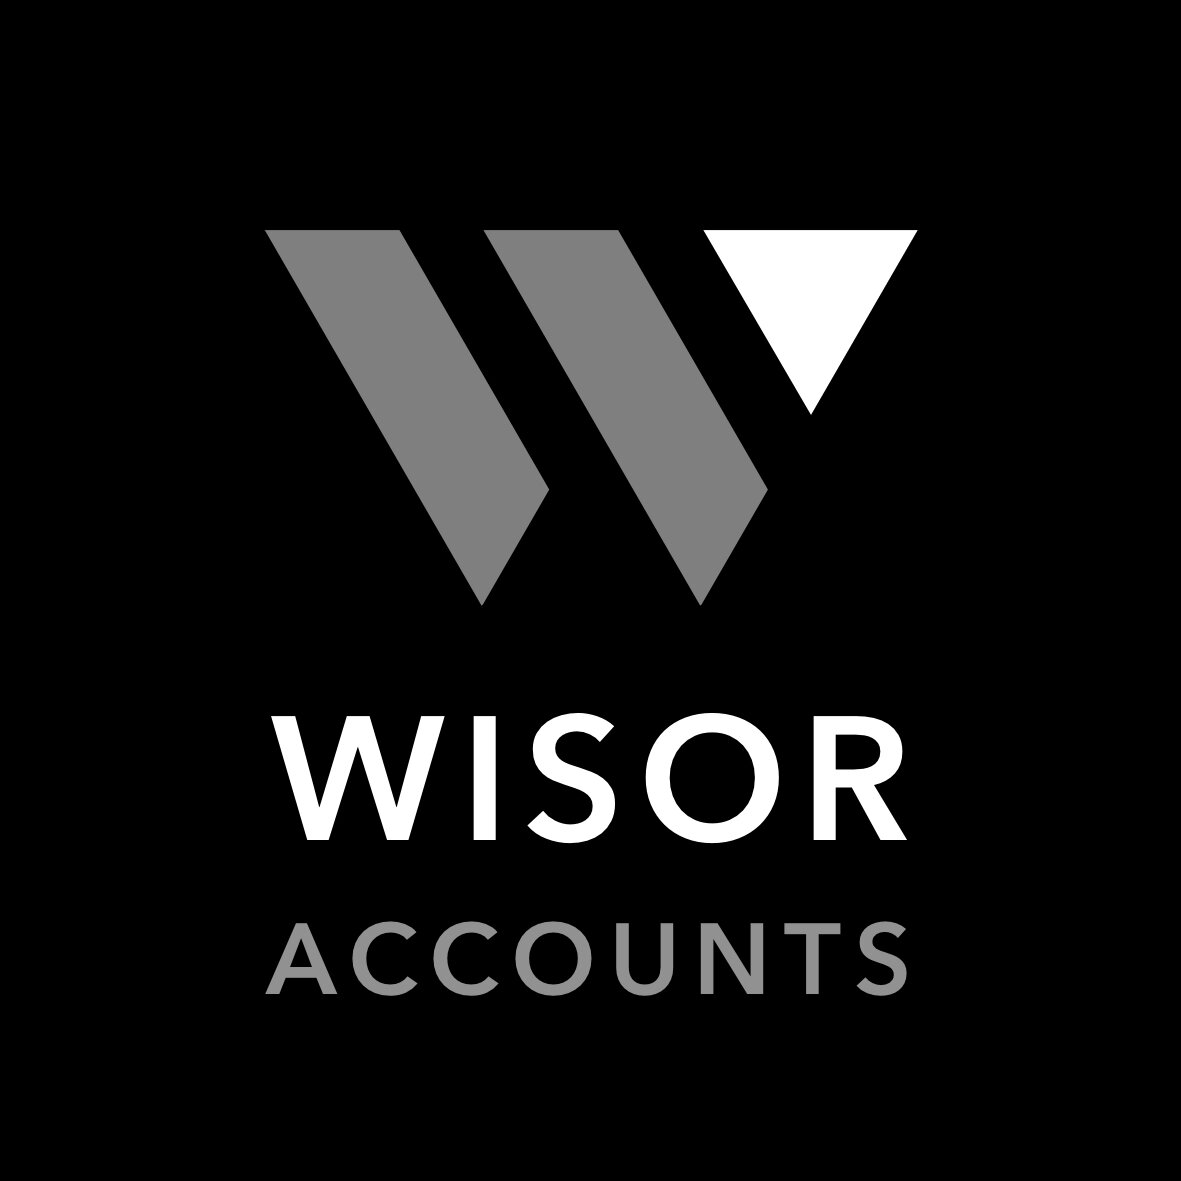 Wisor Accounts Logo.png  For download click on image.